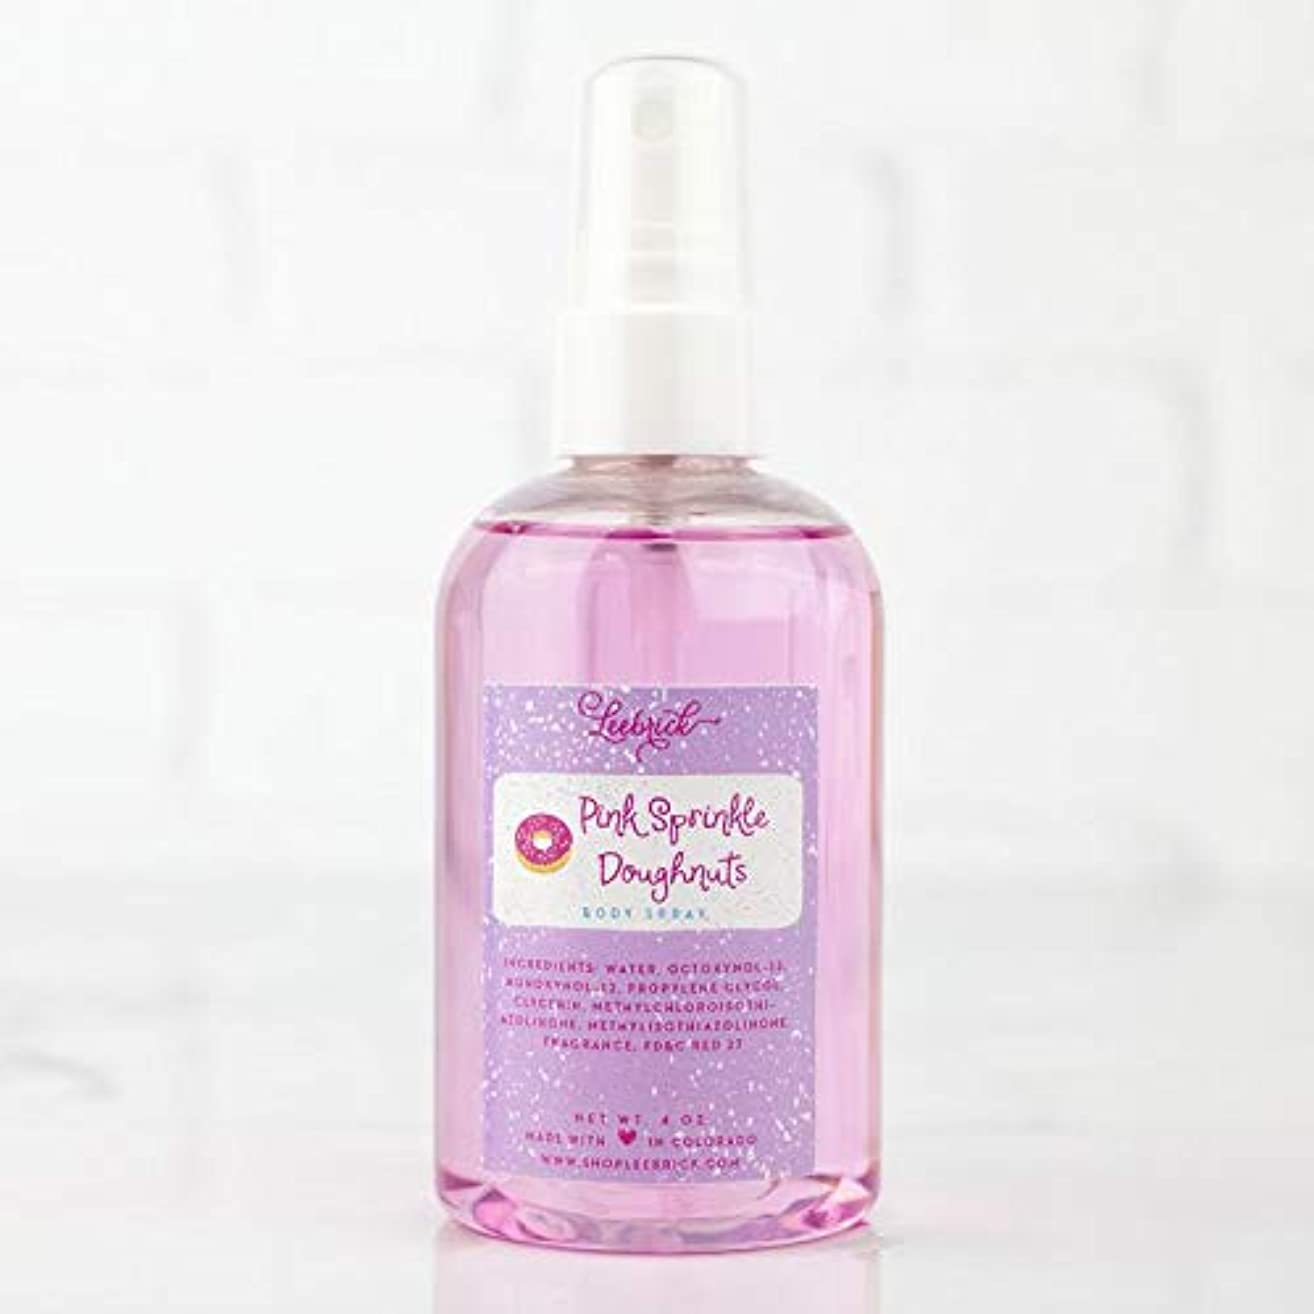 Pink Sprinkle Doughnuts Sweet Scented Body Spray Oil Gift for Her - 4 oz